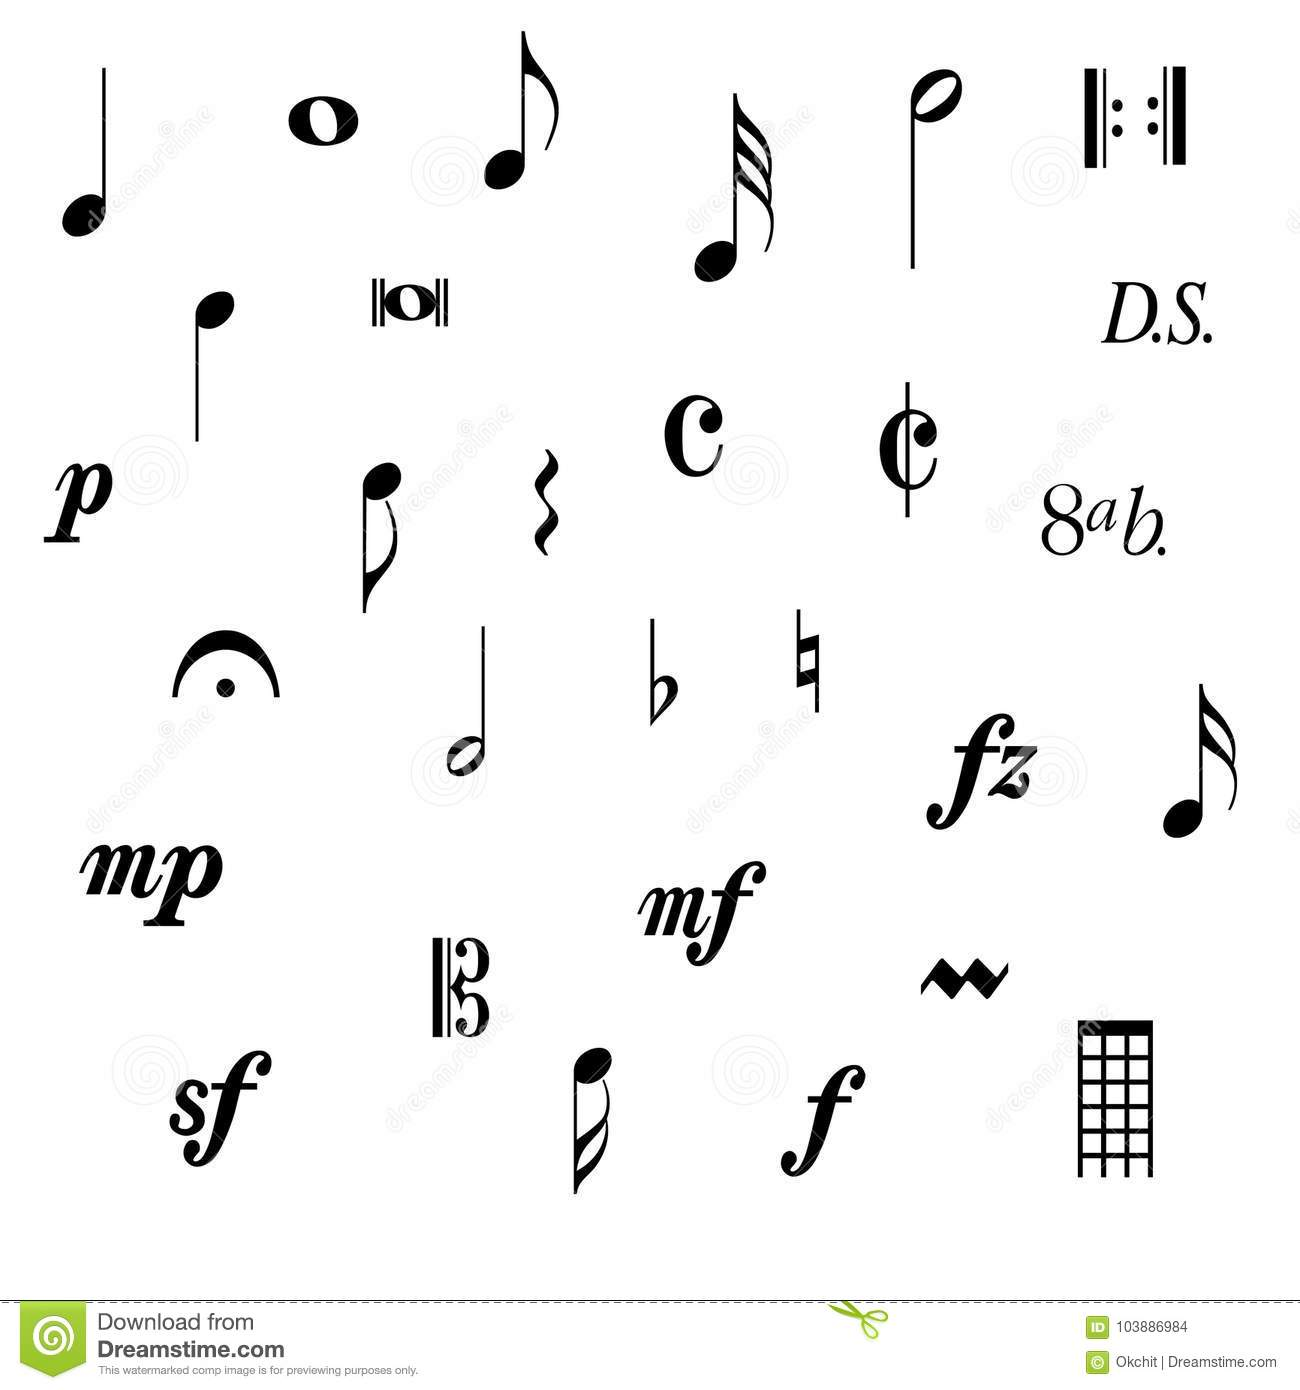 Music Note Symbols Stock Vector Illustration Of Stave 103886984